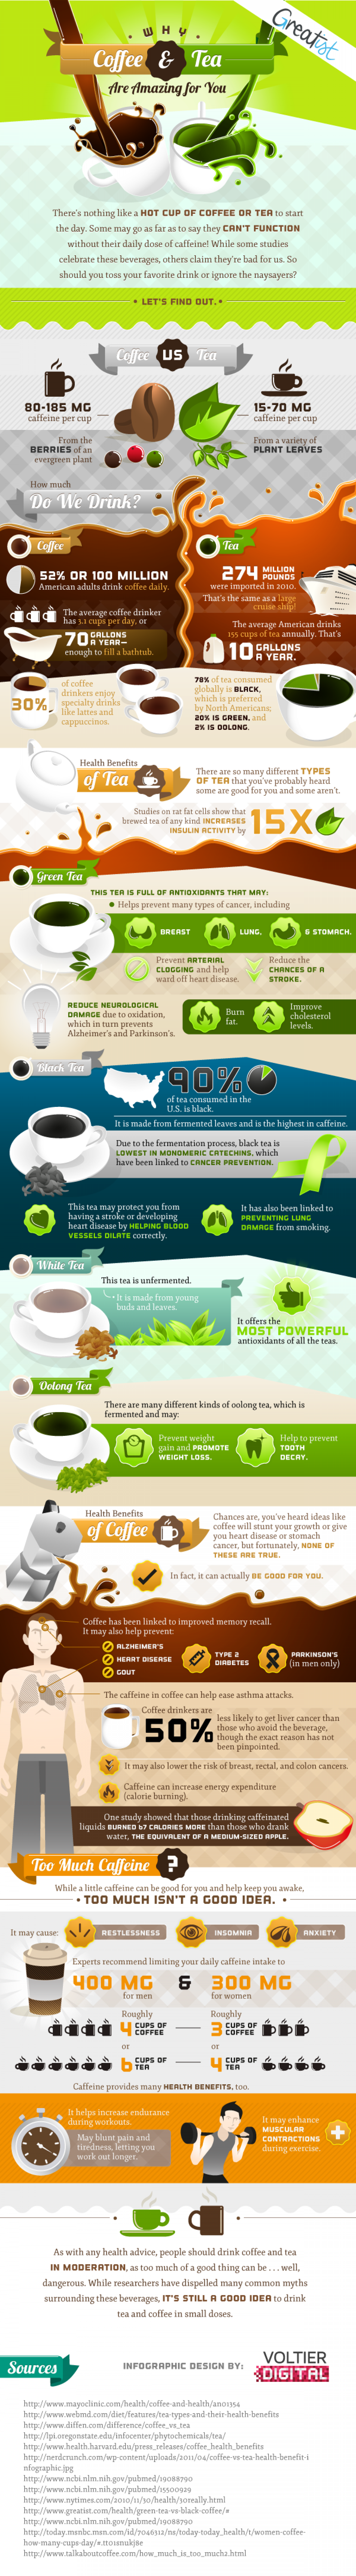 Why Coffee & Tea are Amazing For You Infographic